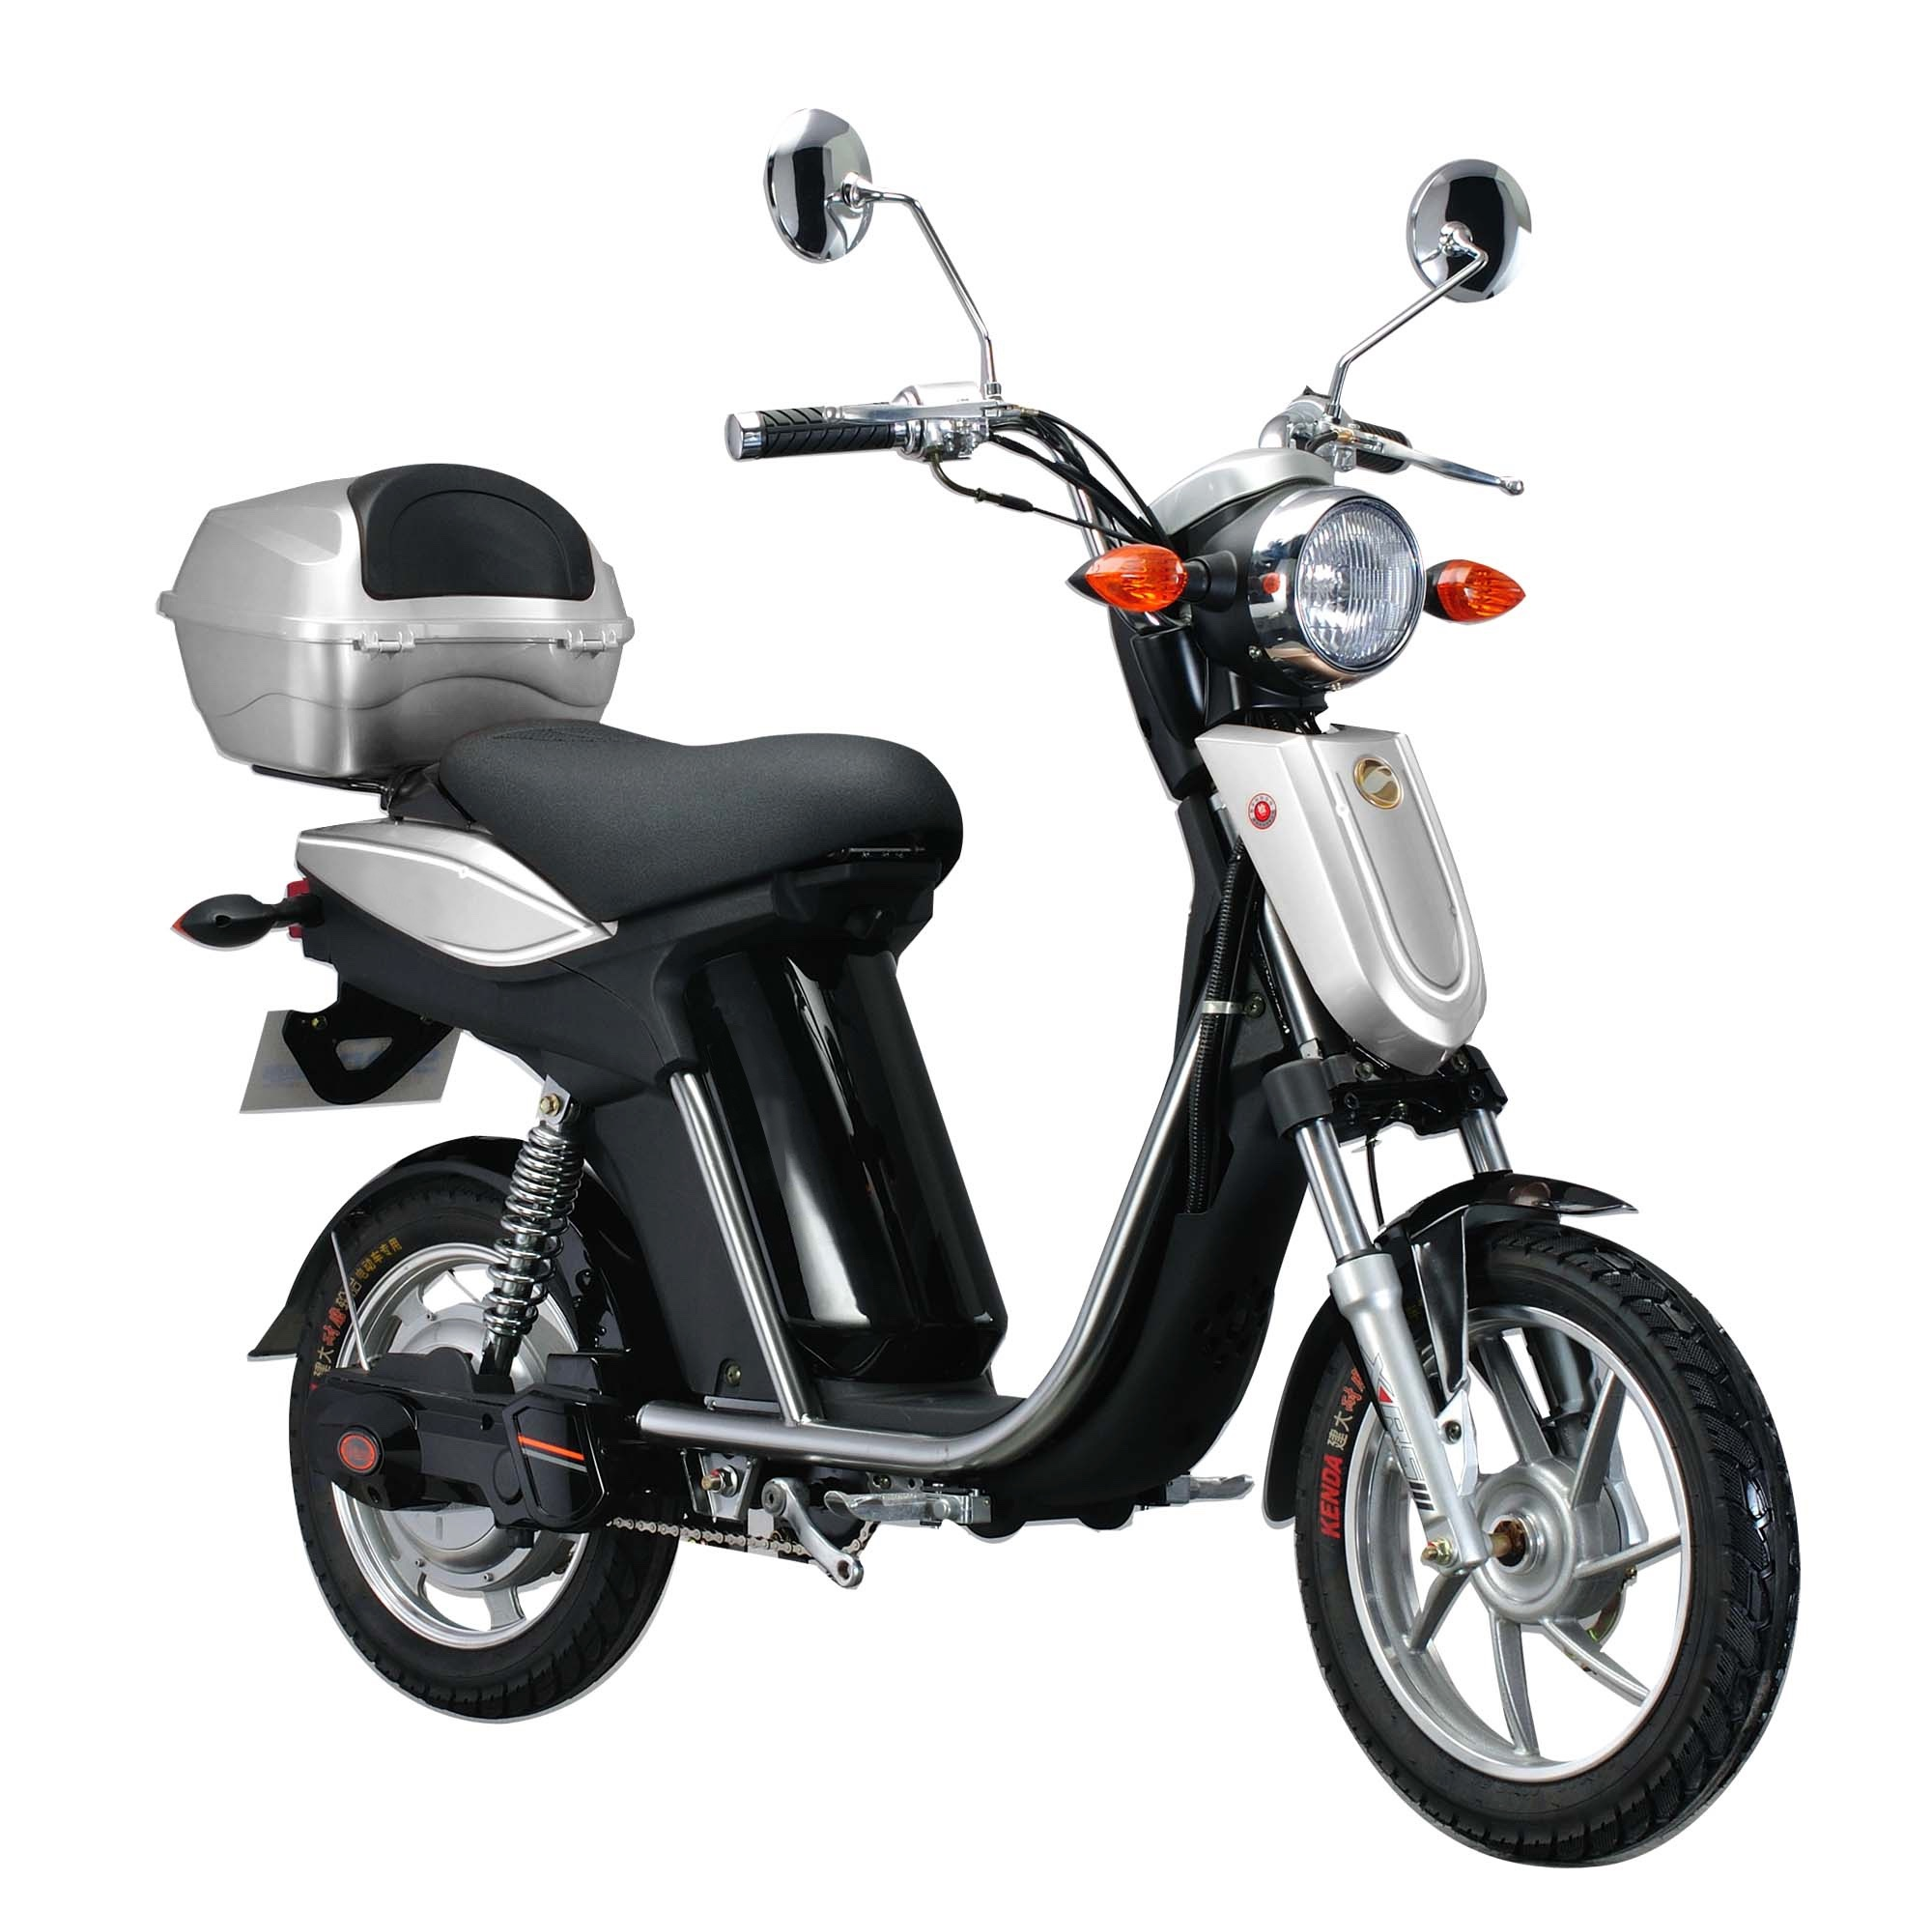 Hot Selling Electric Scooter with Pedals